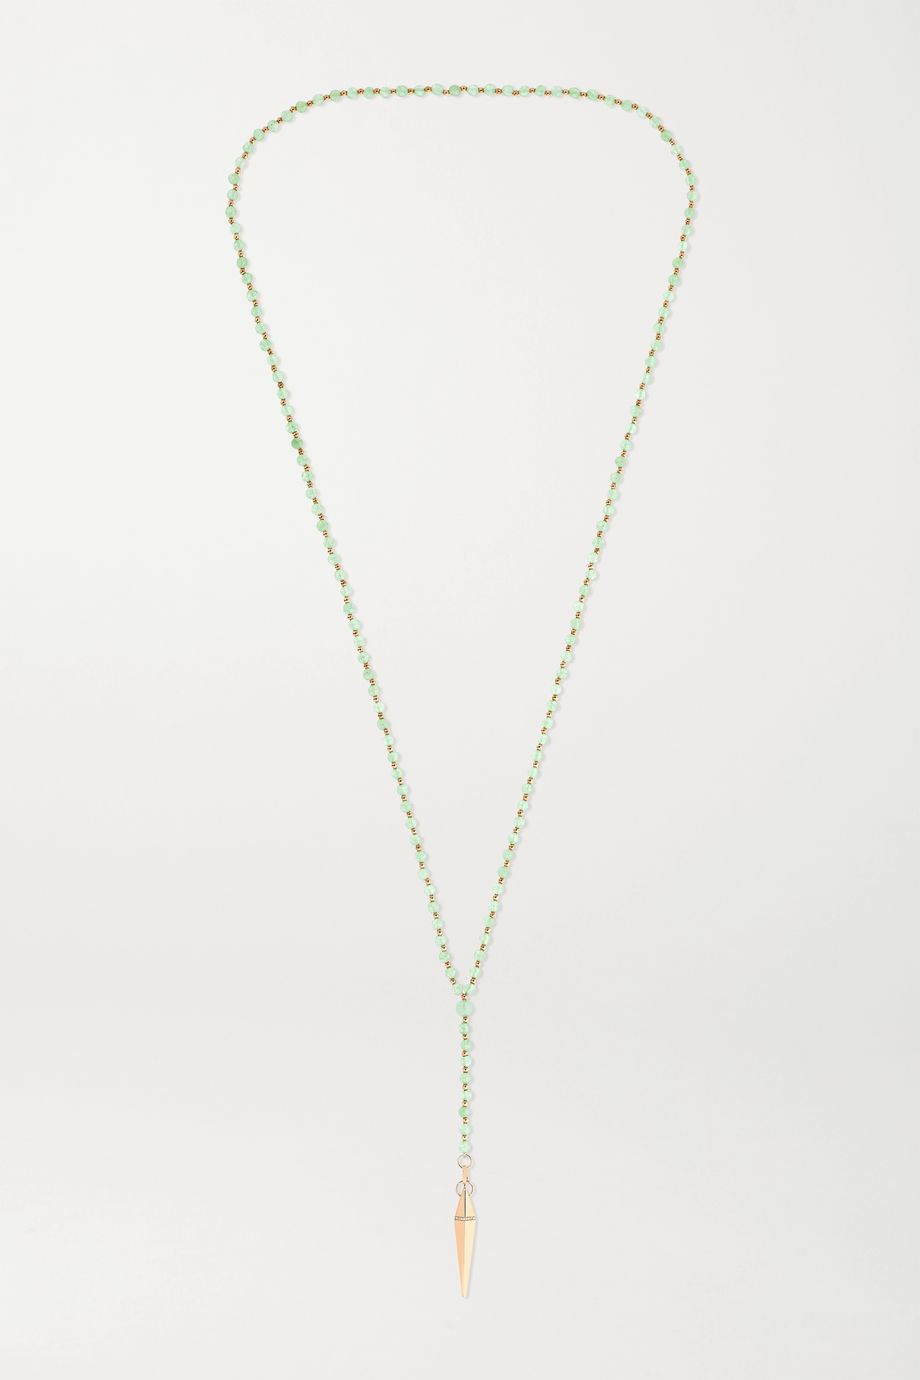 Diane Kordas 18-karat rose gold, aventurine and diamond necklace